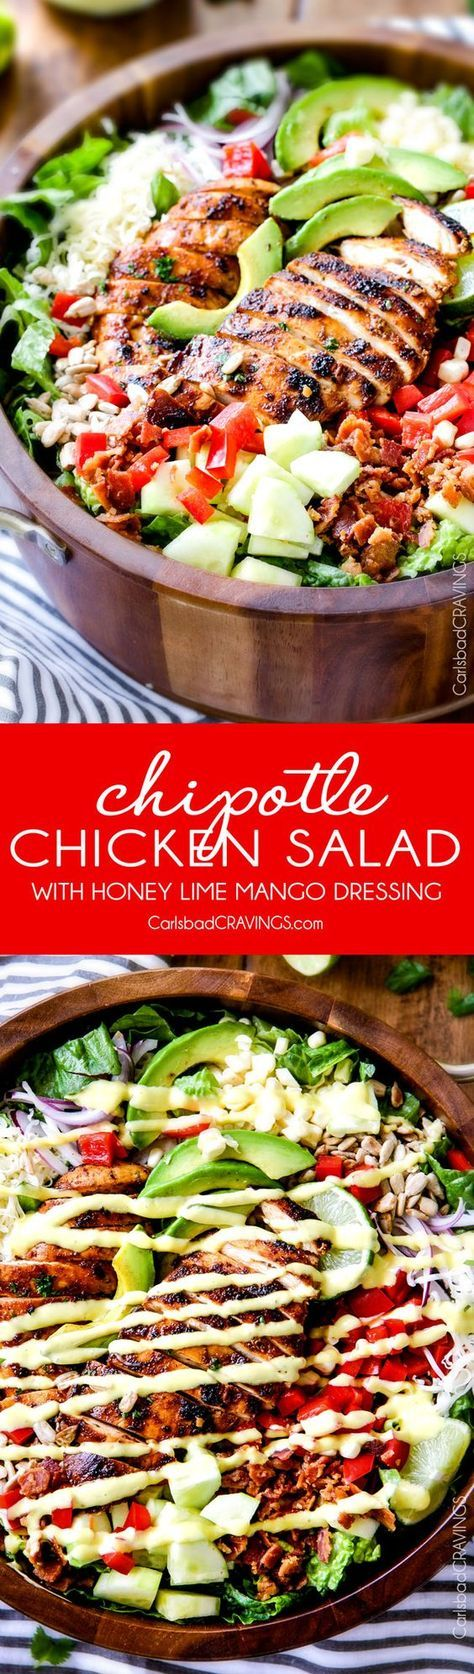 Chipotle Chicken Salad with Honey Lime Mango Dressing – I actually CRAVE this salad its so good! The chipotle chicken is super juicy and flavorful with just the right amount of kick and the mango dressing is so sweet, tangy and refreshing and I love the addition of Monterrey Jack Cheese and sunflower seeds! My friends always ask me to make this for them!